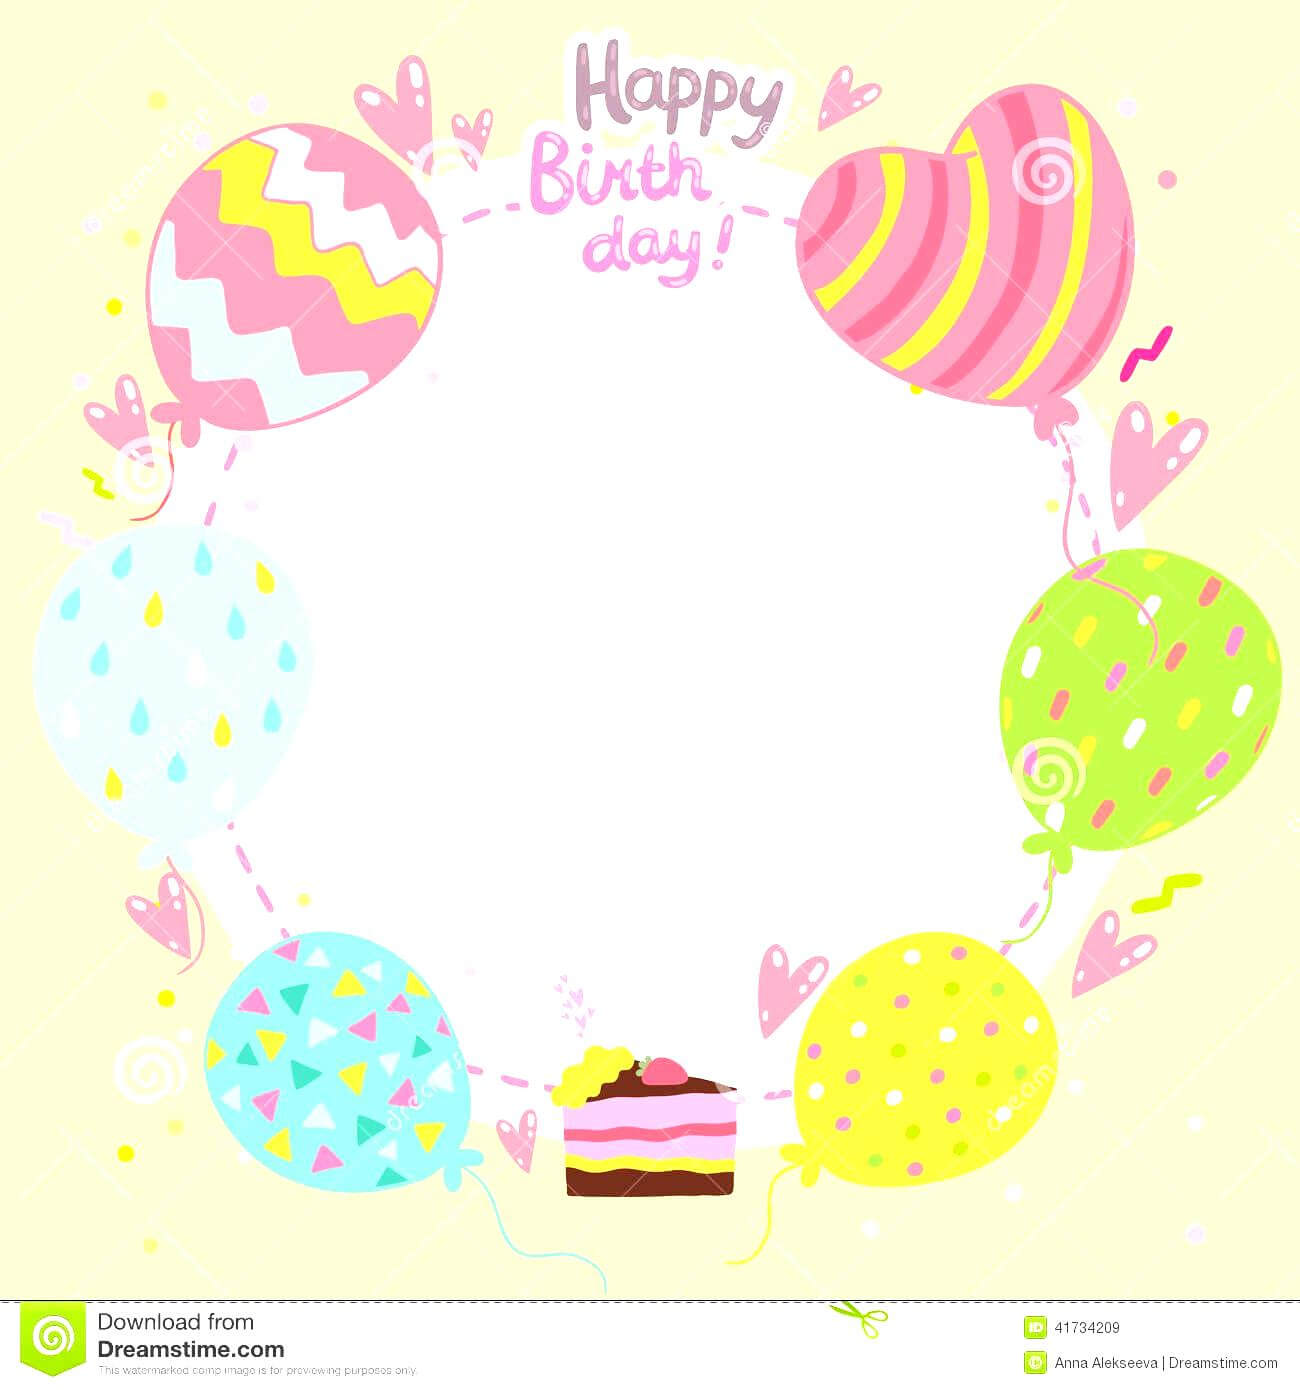 Best Solutions For Birthday Card Templates Microsoft Word With Birthday Card Template Microsoft Word